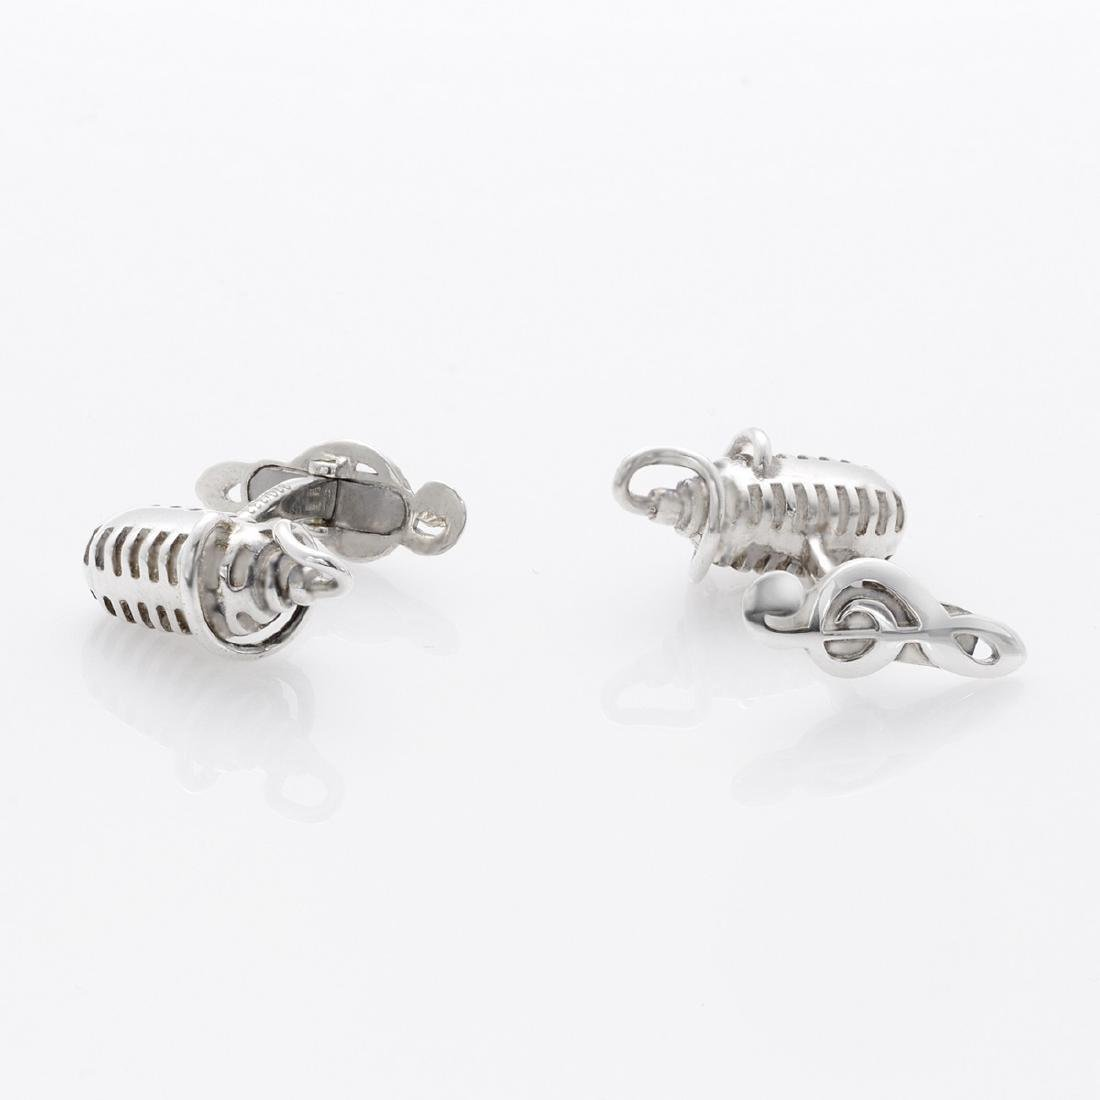 Montegrappa Microphone Sterling Silver Cufflinks - 2